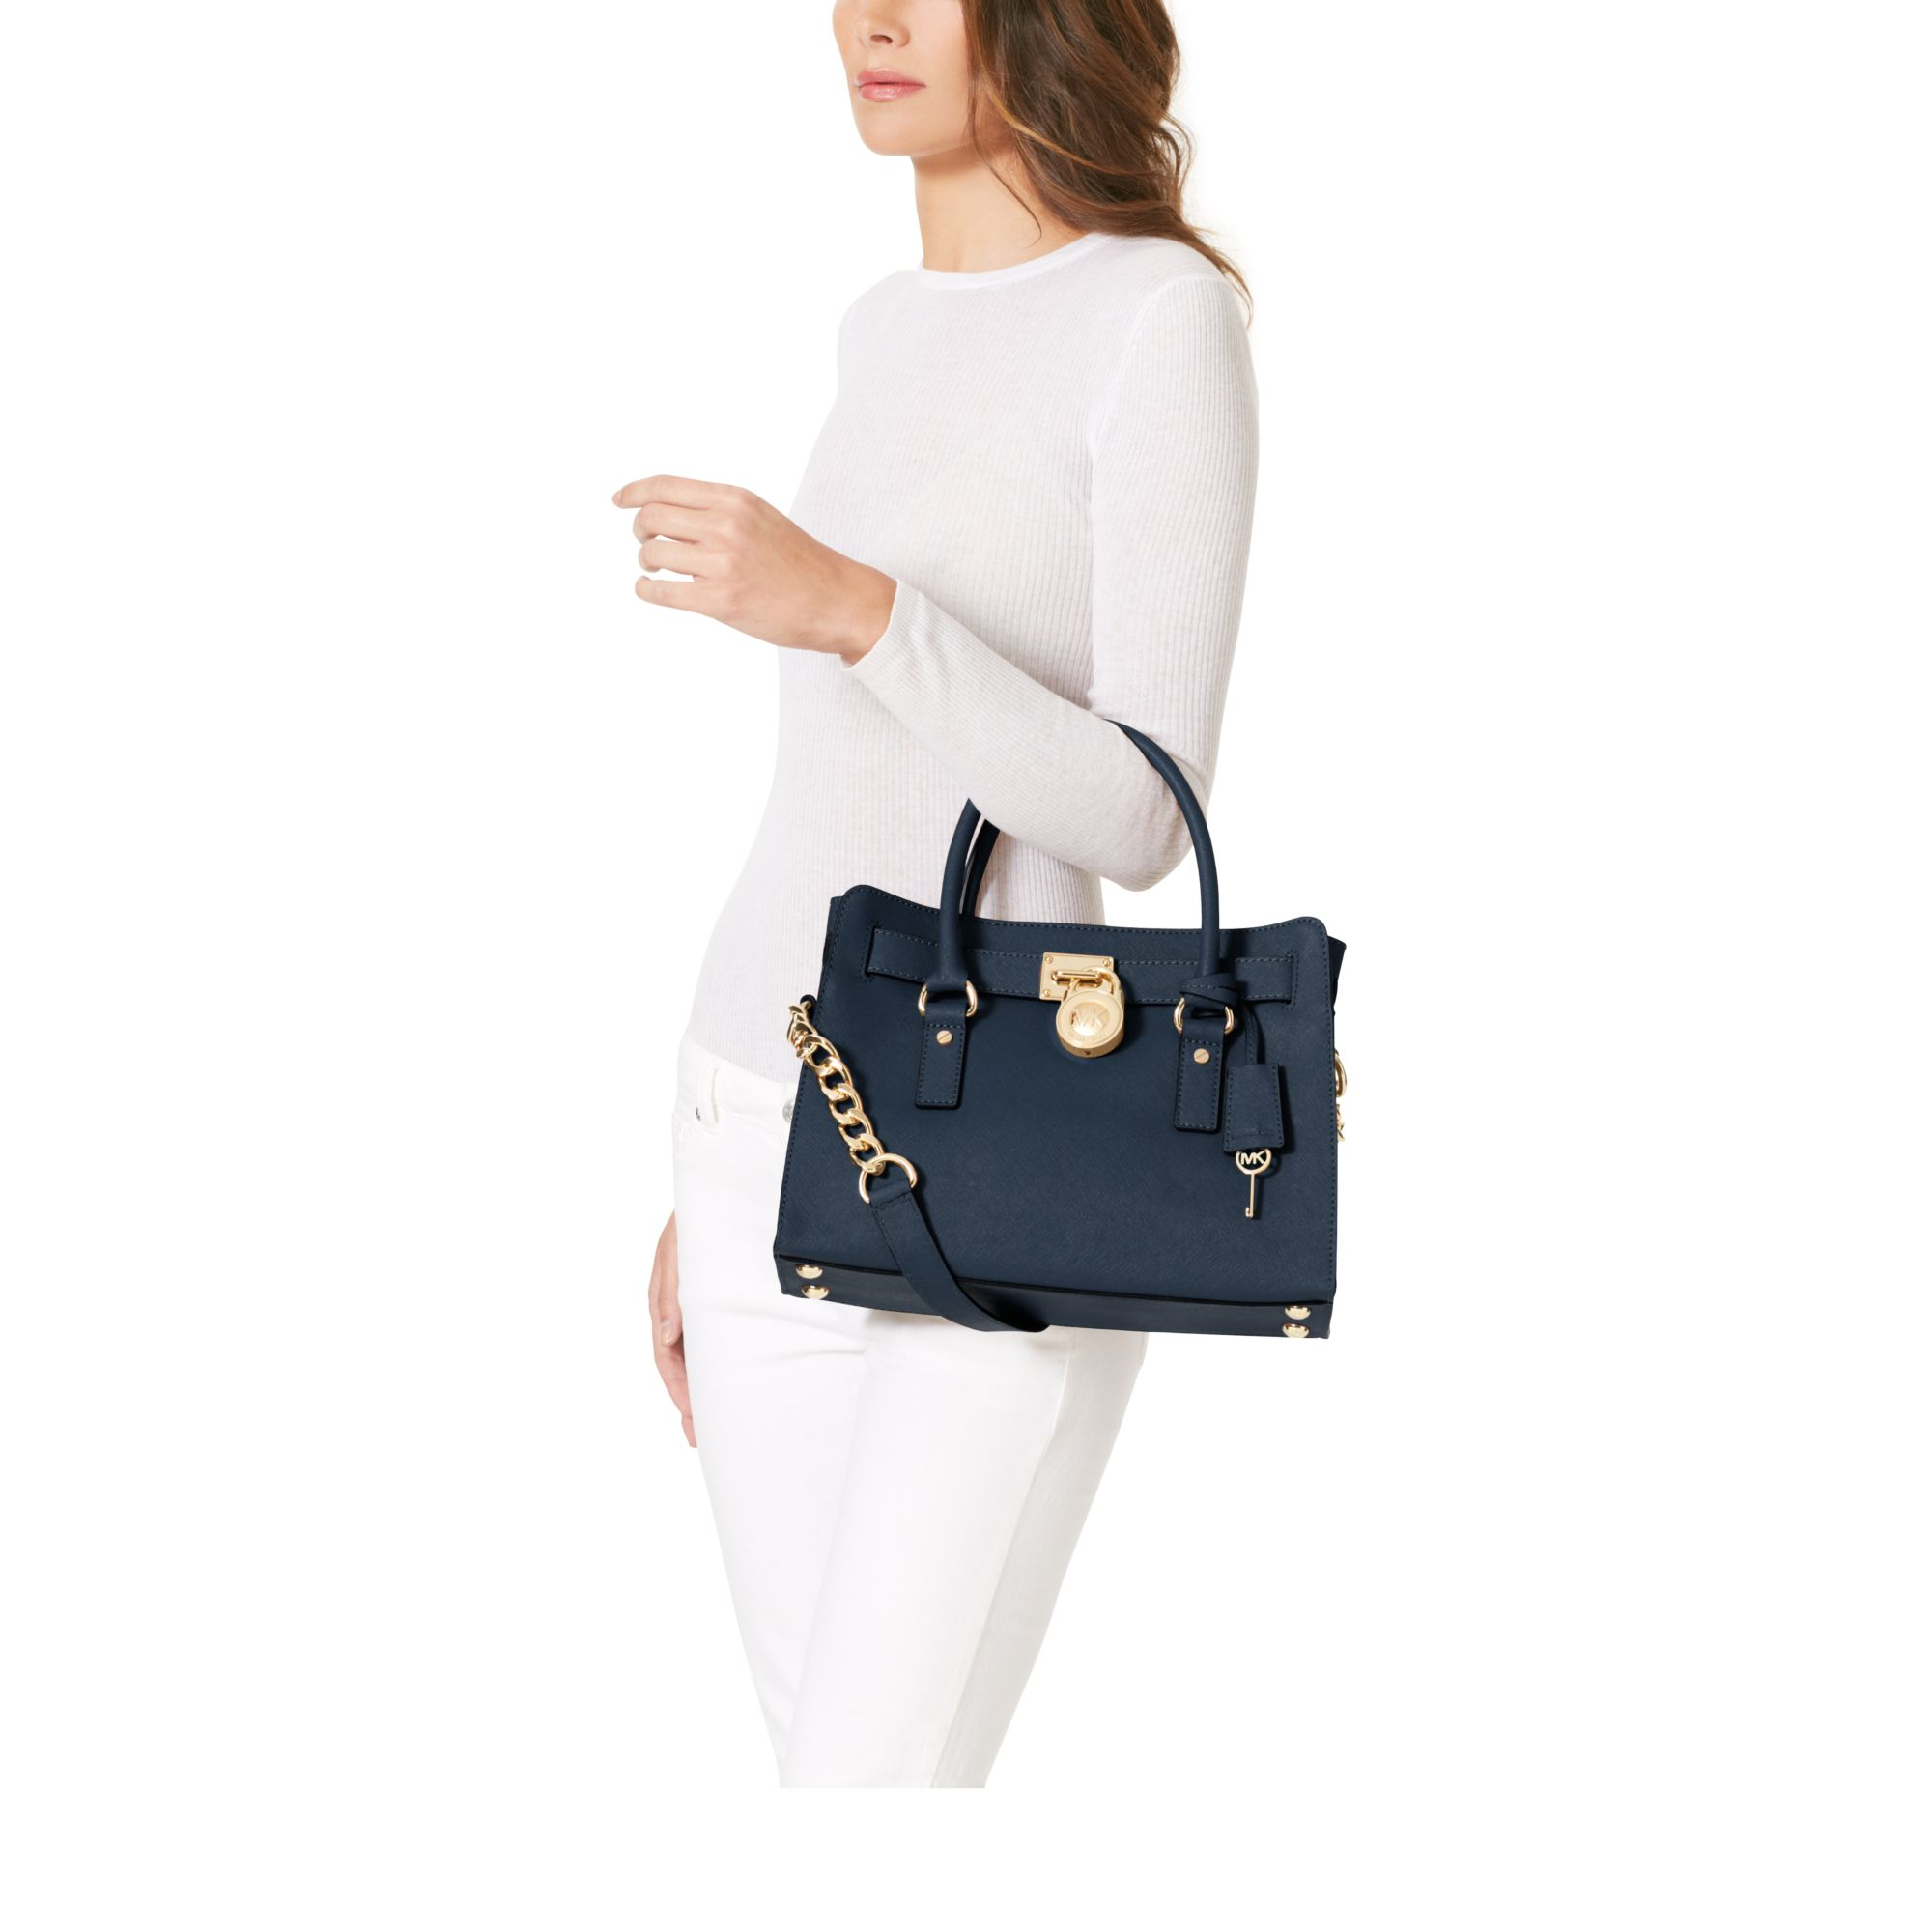 Lyst - Michael Kors Hamilton Saffiano Leather Medium Satchel in Blue f3133687bdb89